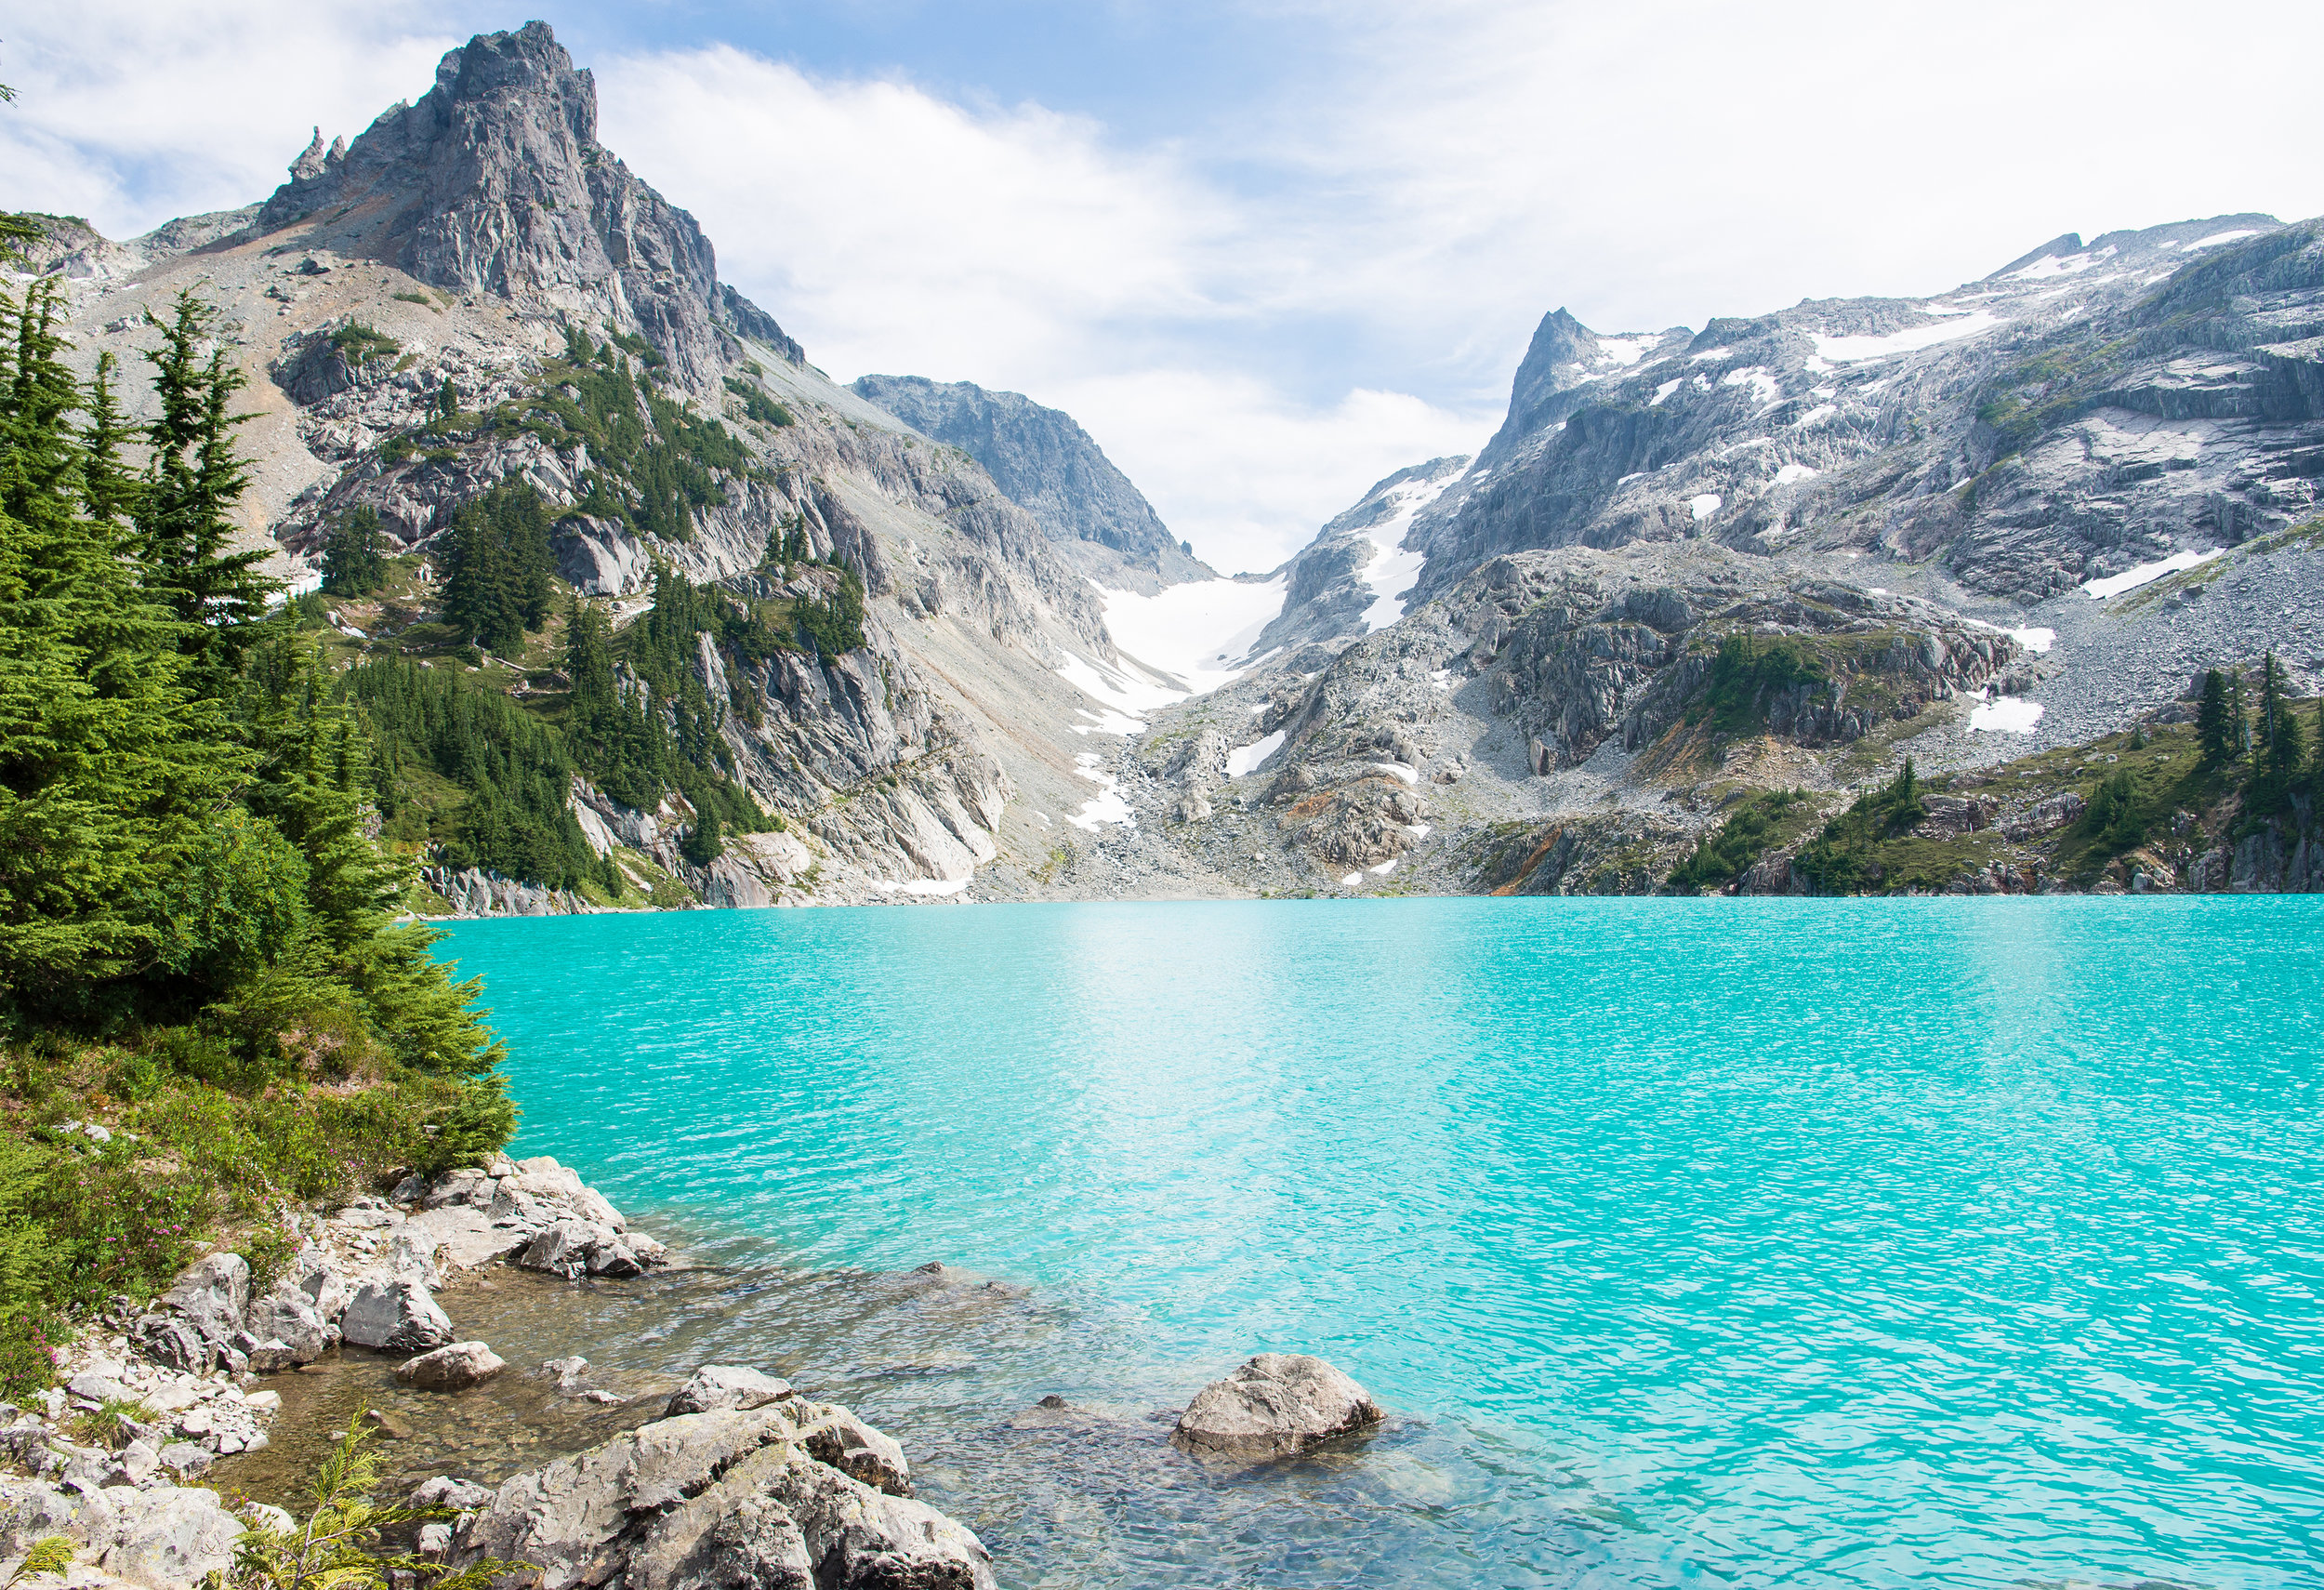 The glacially-fed waters of Jade Lake.